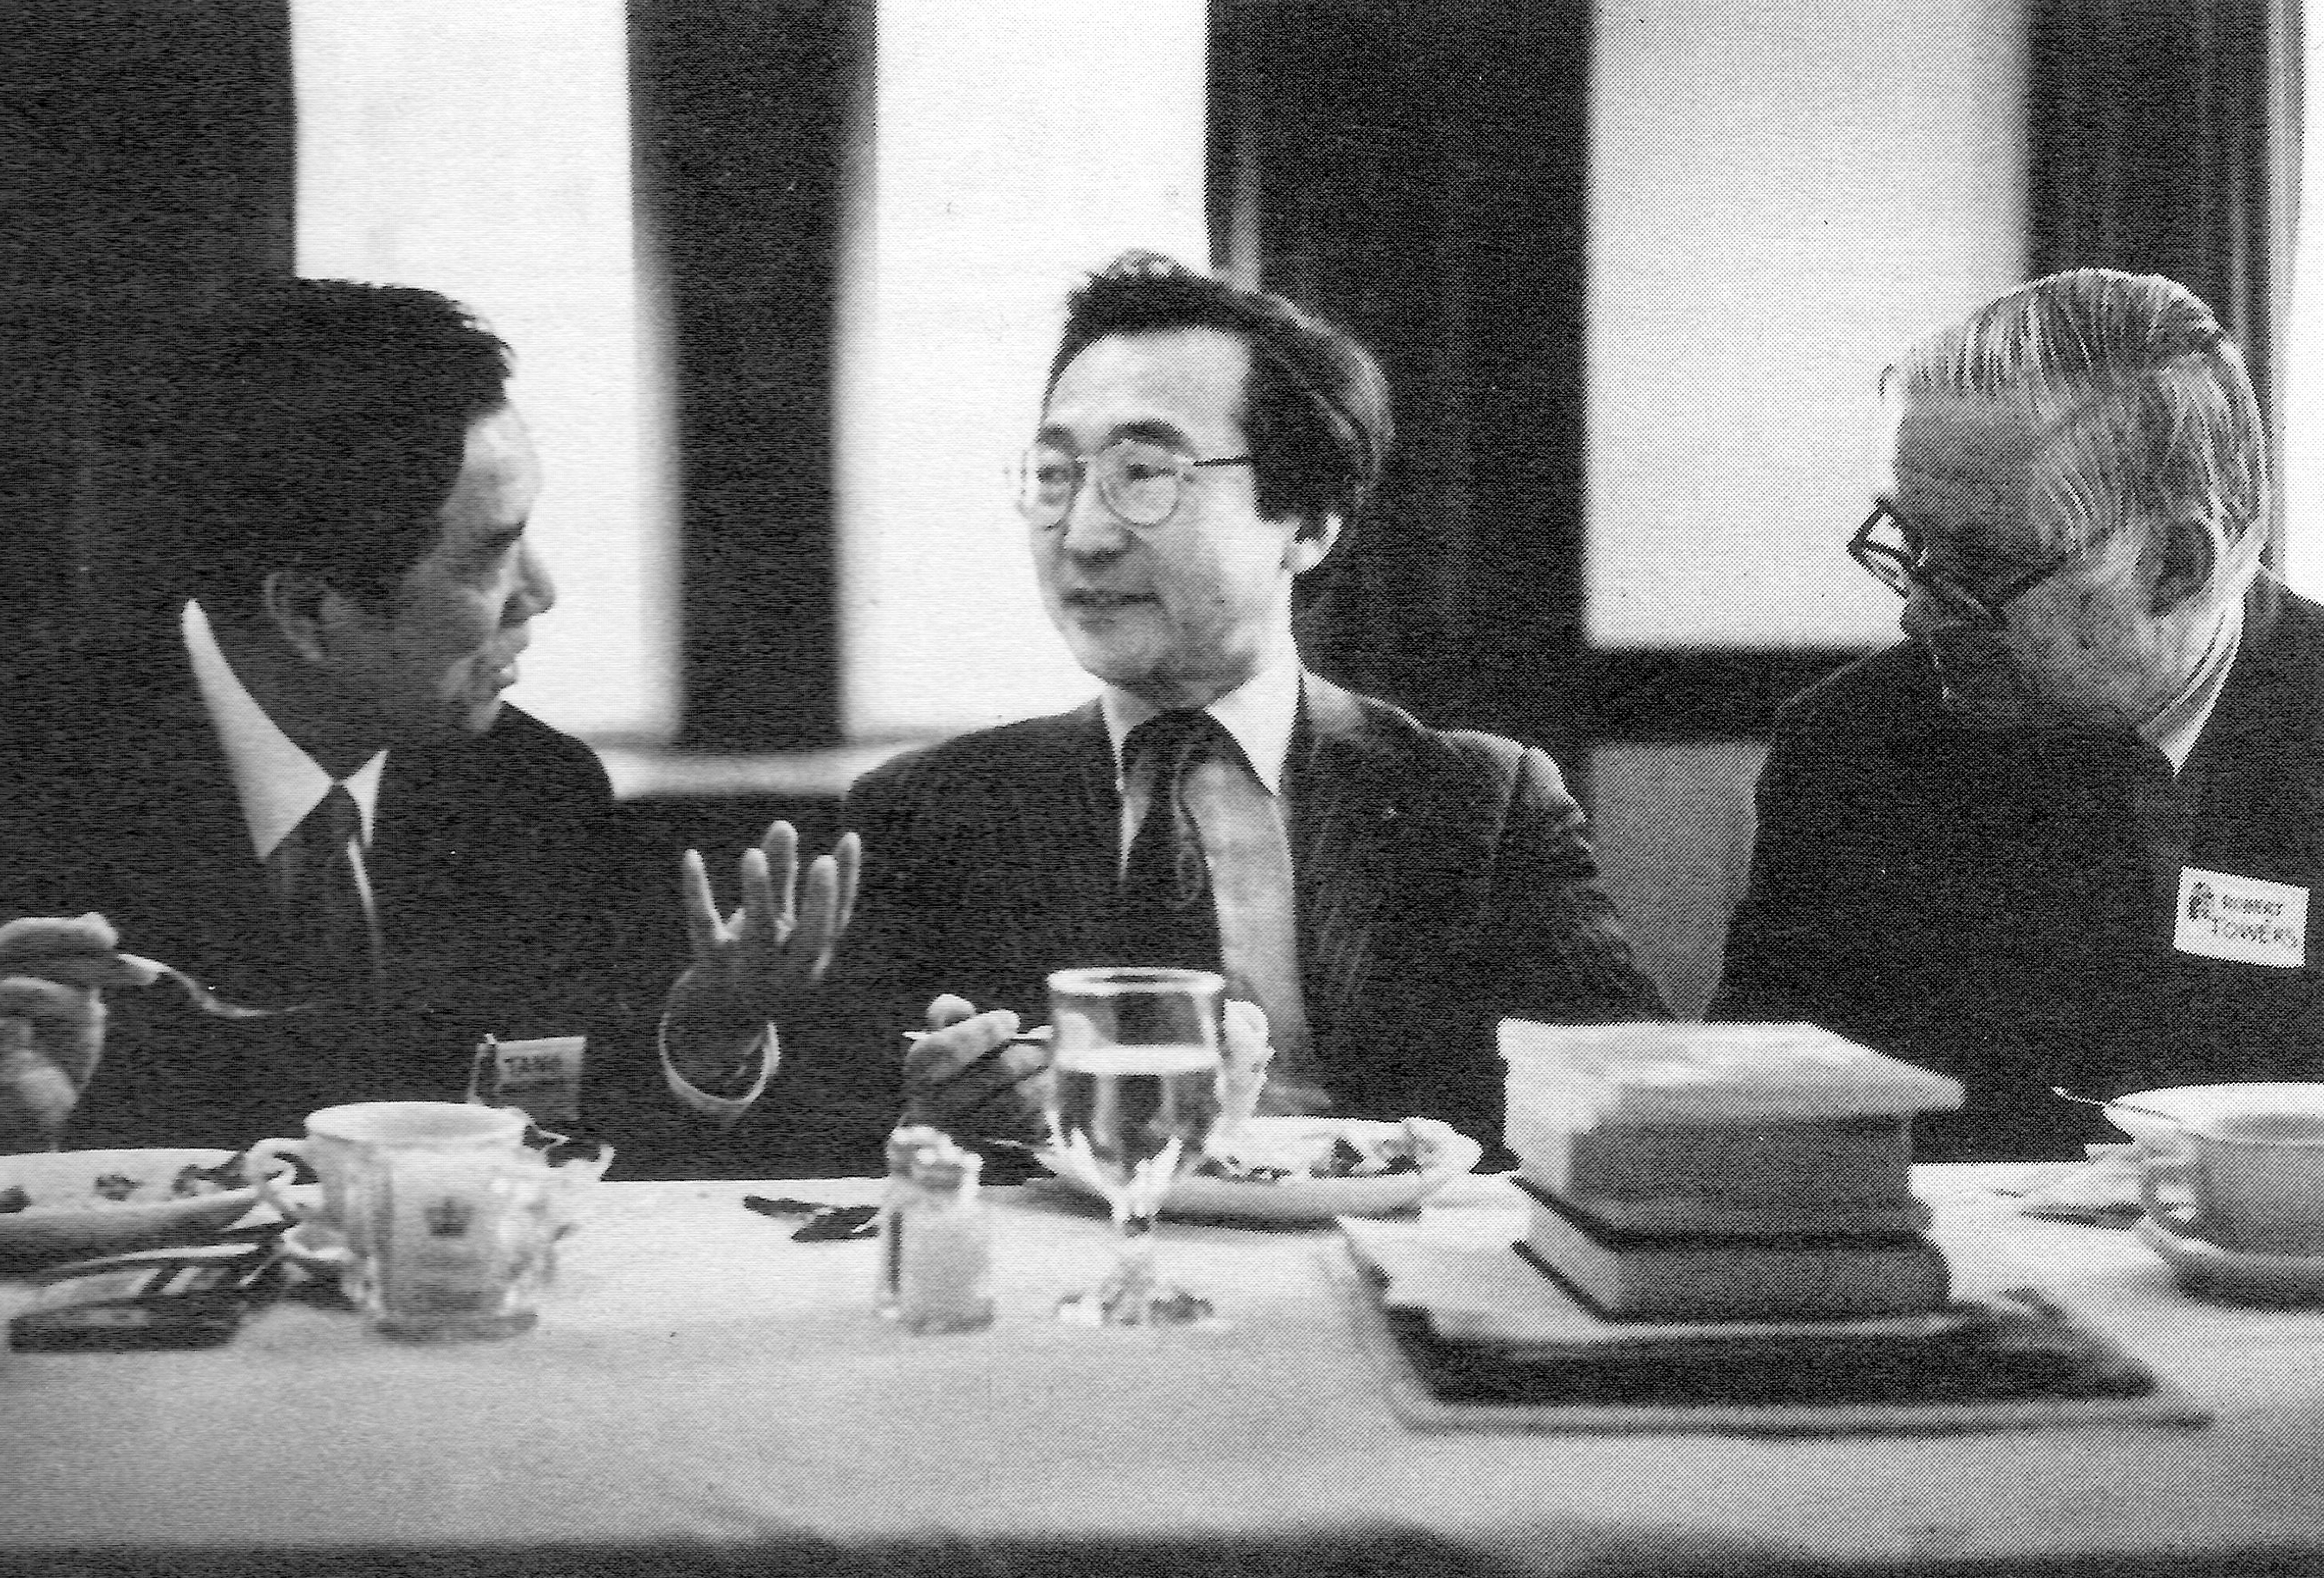 Chinese-American Writer's Symposium at Columbia University. From left: Tang Dacheng, Chou Wen-chung, and Robert Towers